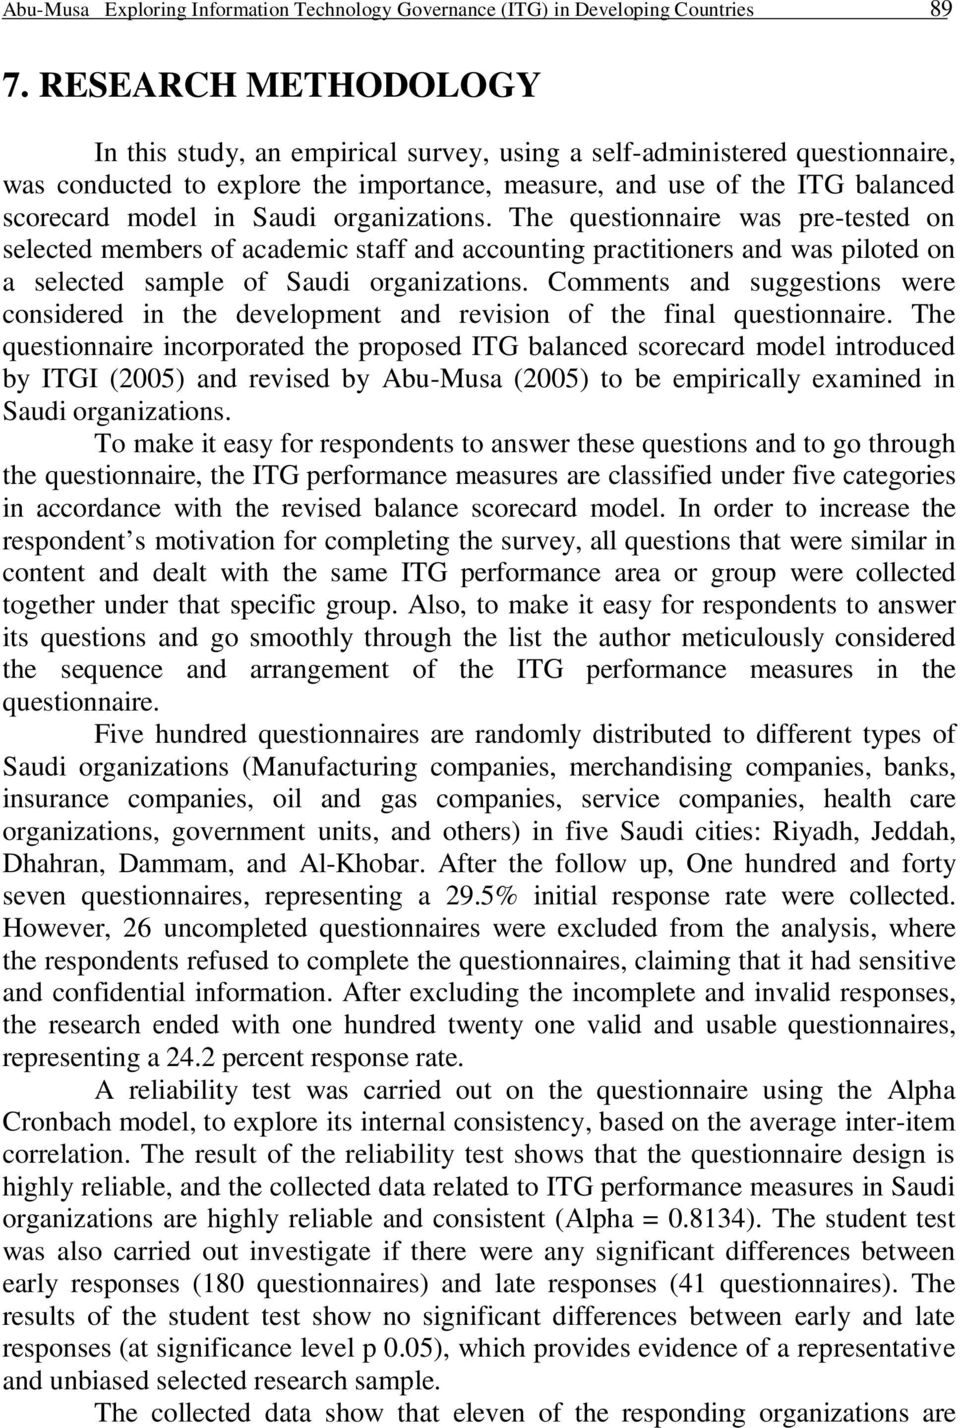 Saudi organizations. The questionnaire was pre-tested on selected members of academic staff and accounting practitioners and was piloted on a selected sample of Saudi organizations.